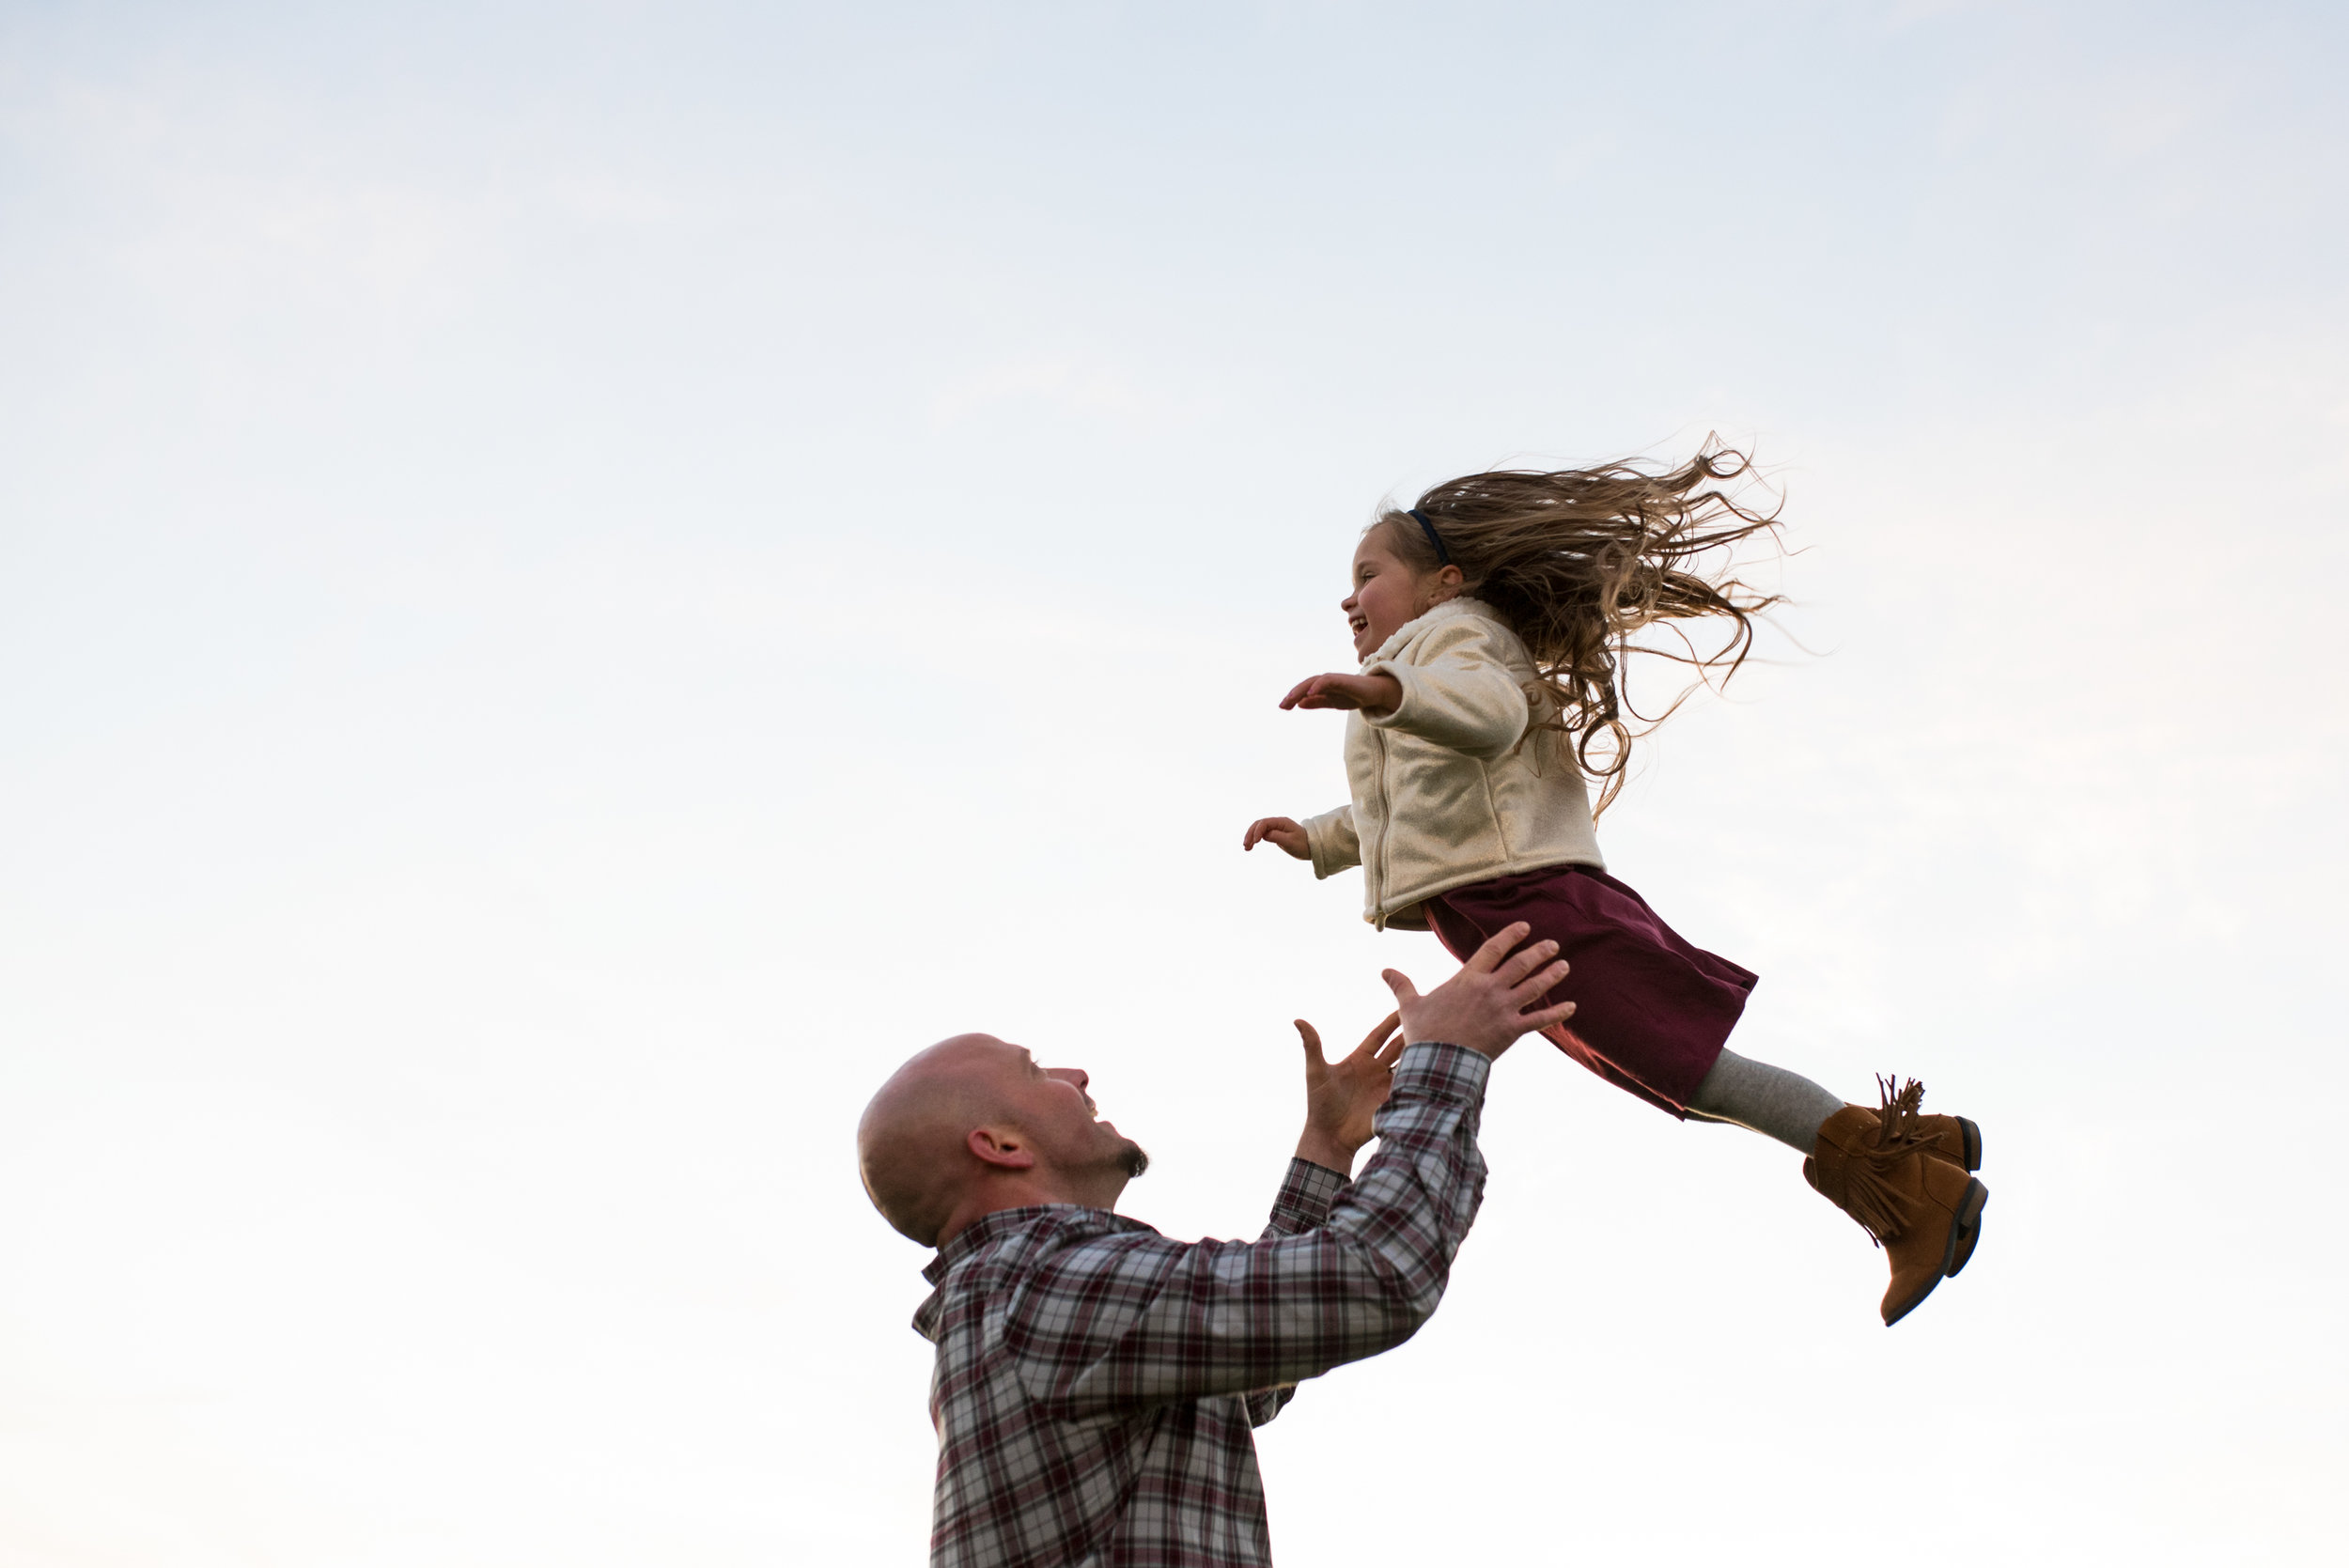 Dad throwing daughter in the air and about to catch her